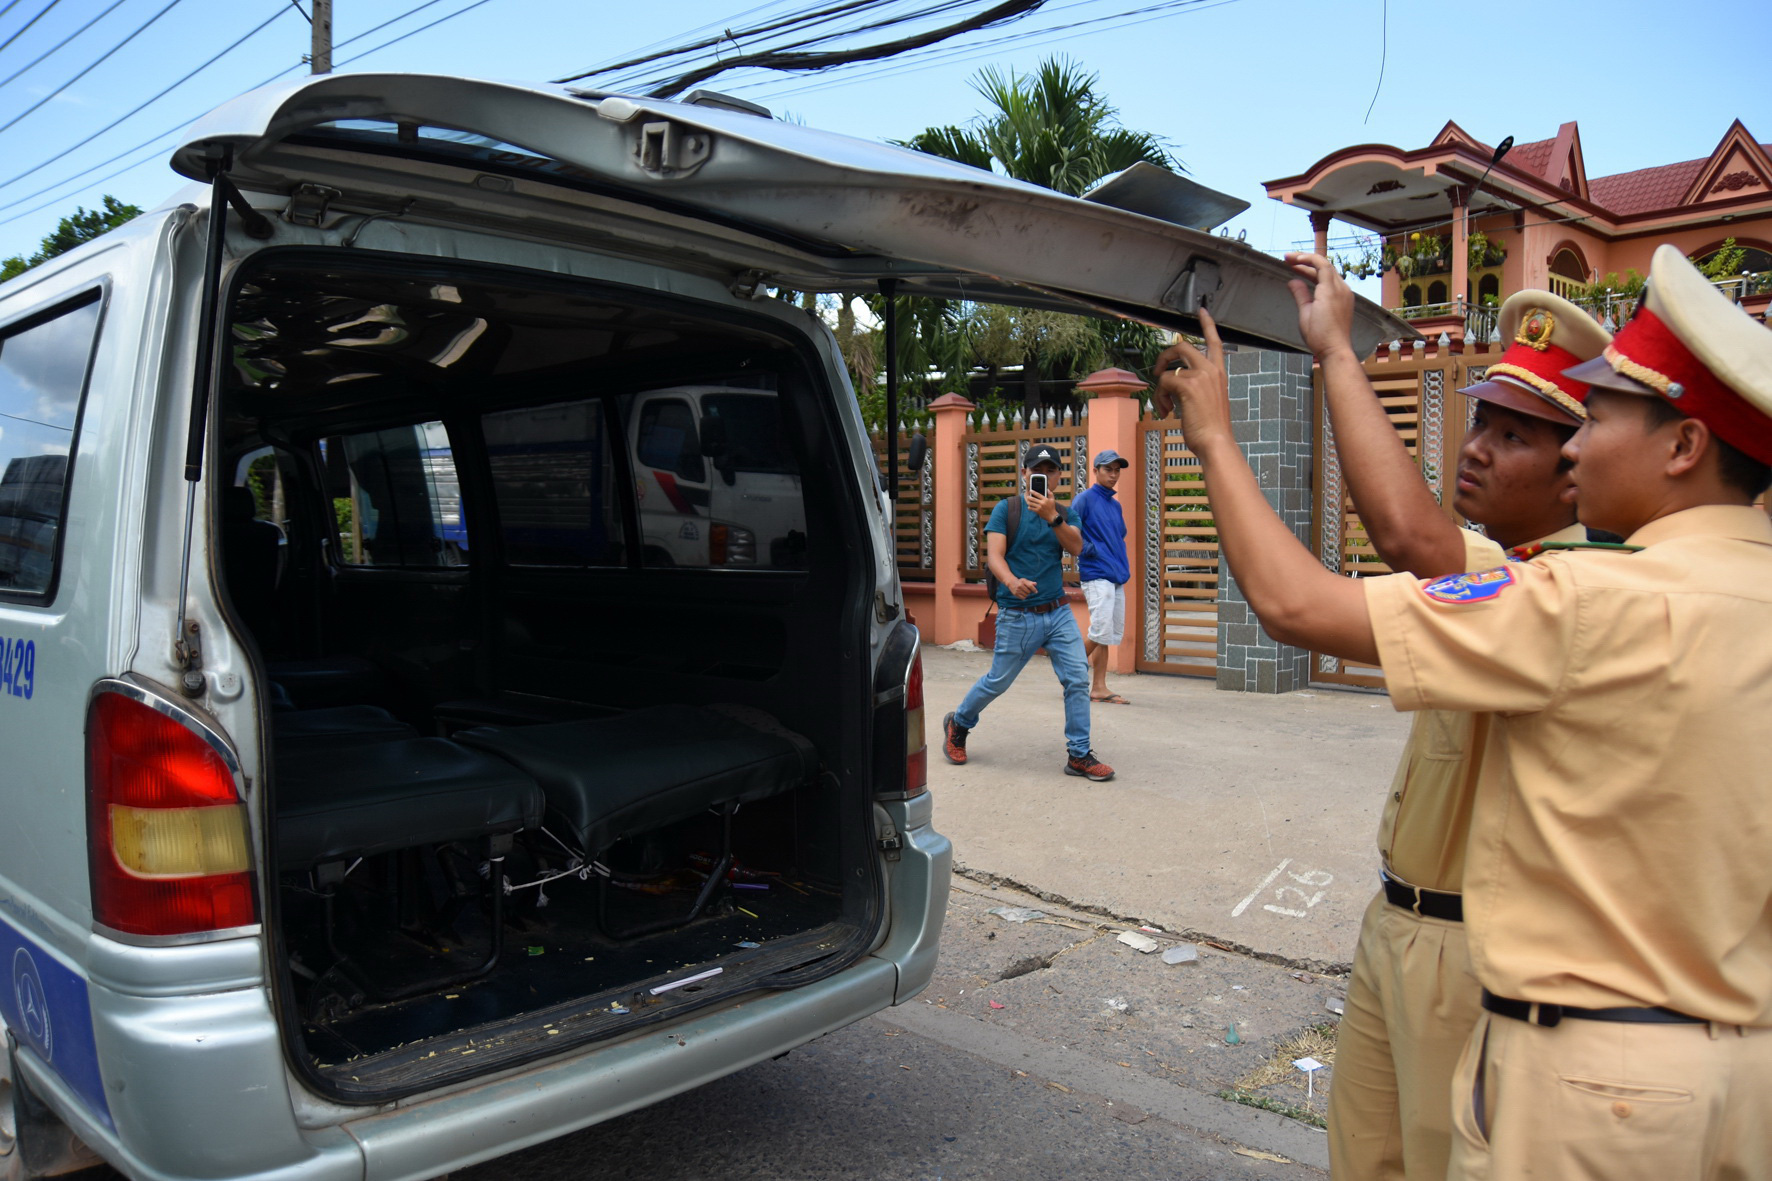 Students fall out of school vans in separate cases in southern Vietnamese province